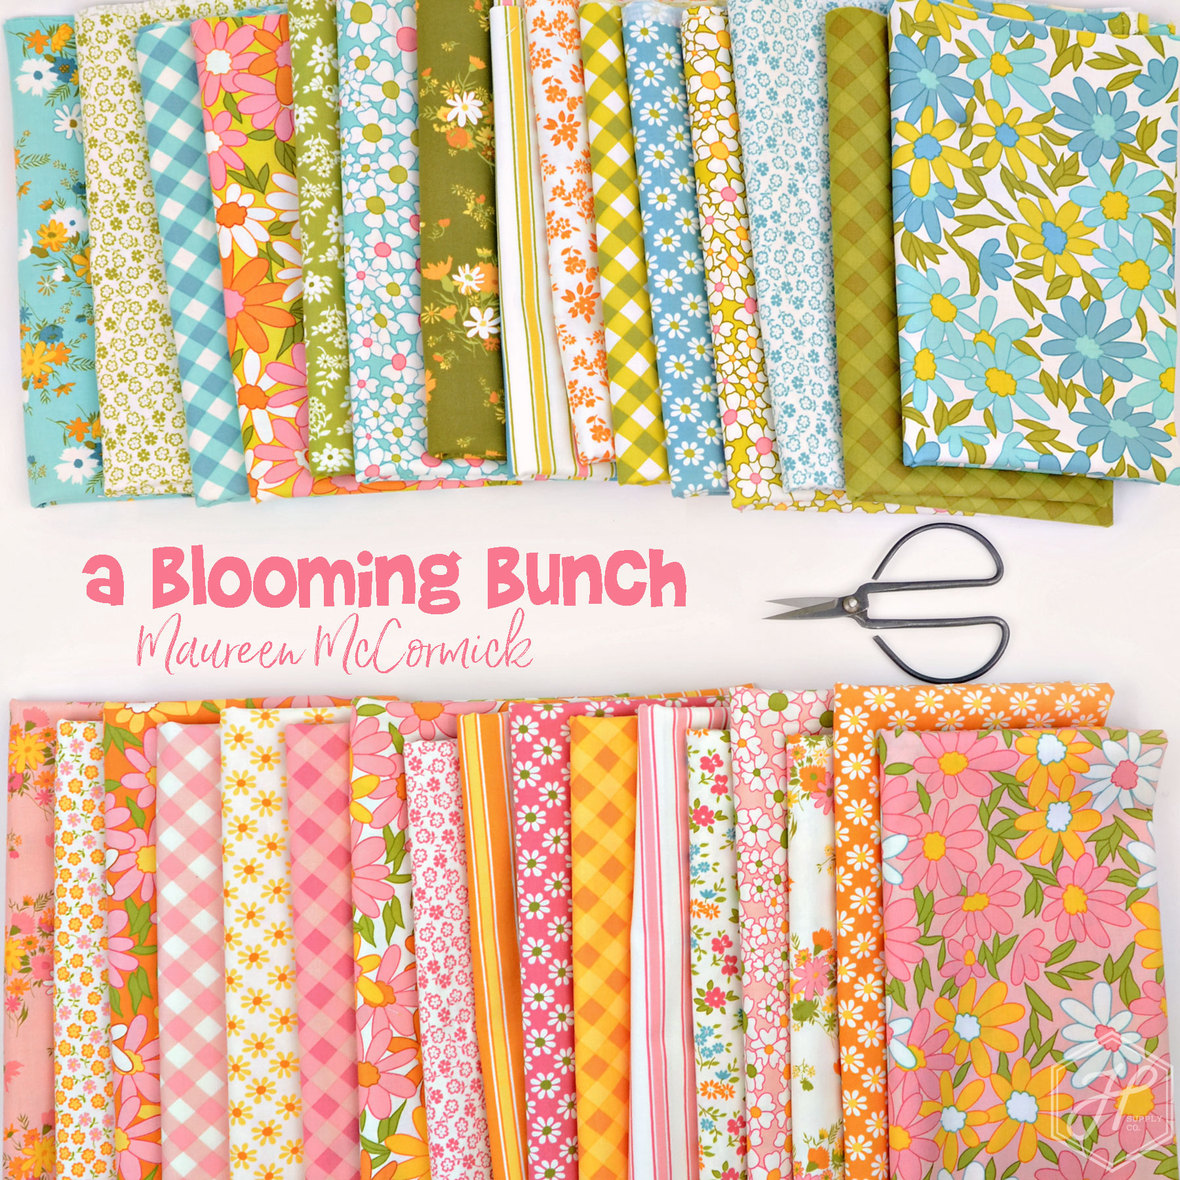 A-Blooming-Bunch-Fabric-Maureen-McCormick-for-Moda-at-Hawthorne-Supply-Co